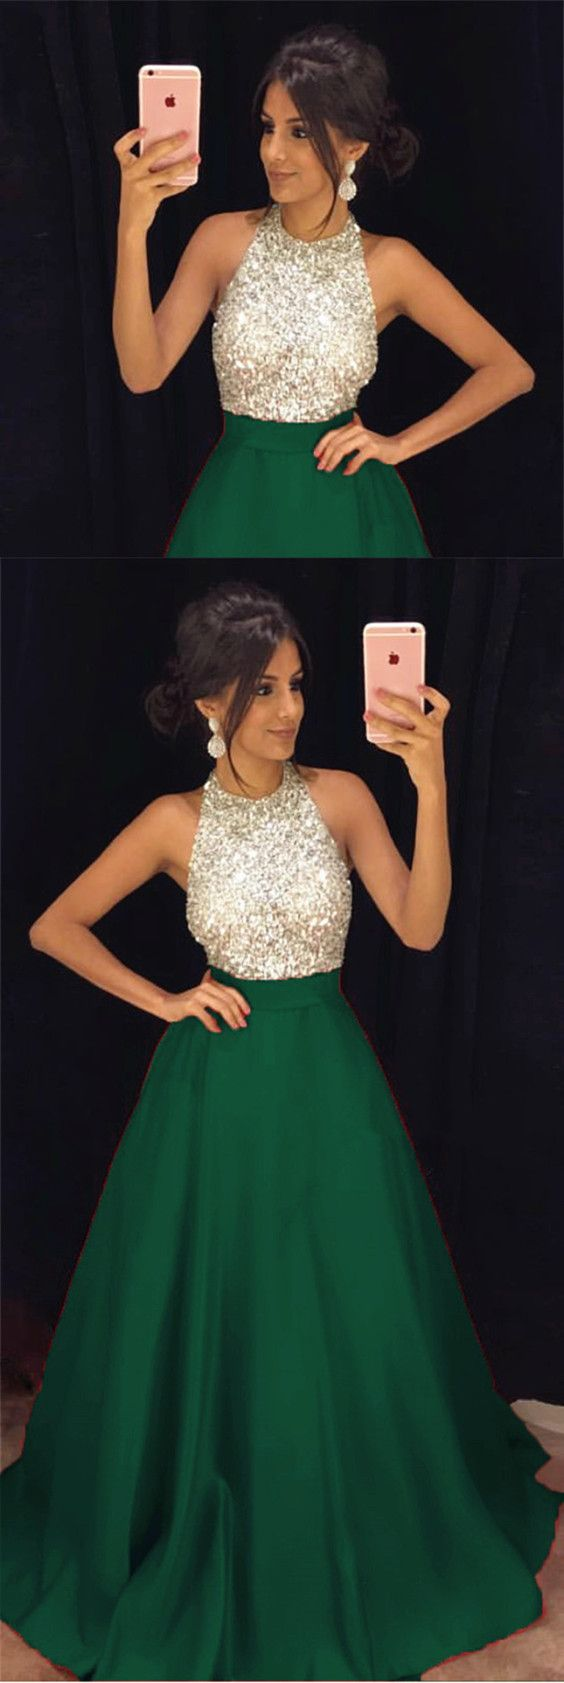 halter prom dress,satin ball gowns,ball gowns prom dress,beaded prom dress,luxurious evening gown,emerald green prom dress,dark green evening dress